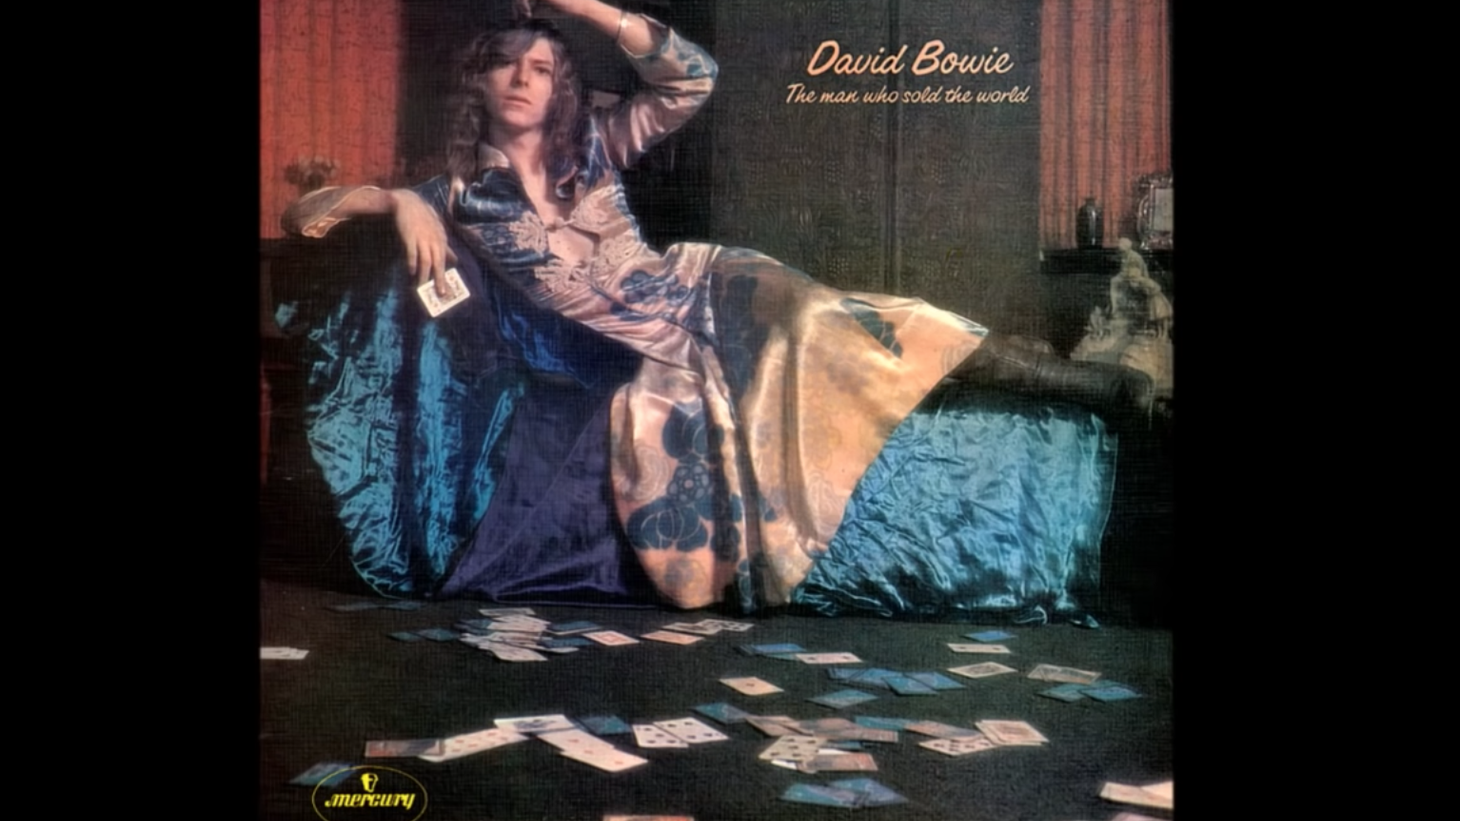 """When David Bowie's """"The Man Who Sold the World"""" album came out in 1970, the cover image stirred up controversy around Bowie's gender and sexuality, which lasted his entire career."""